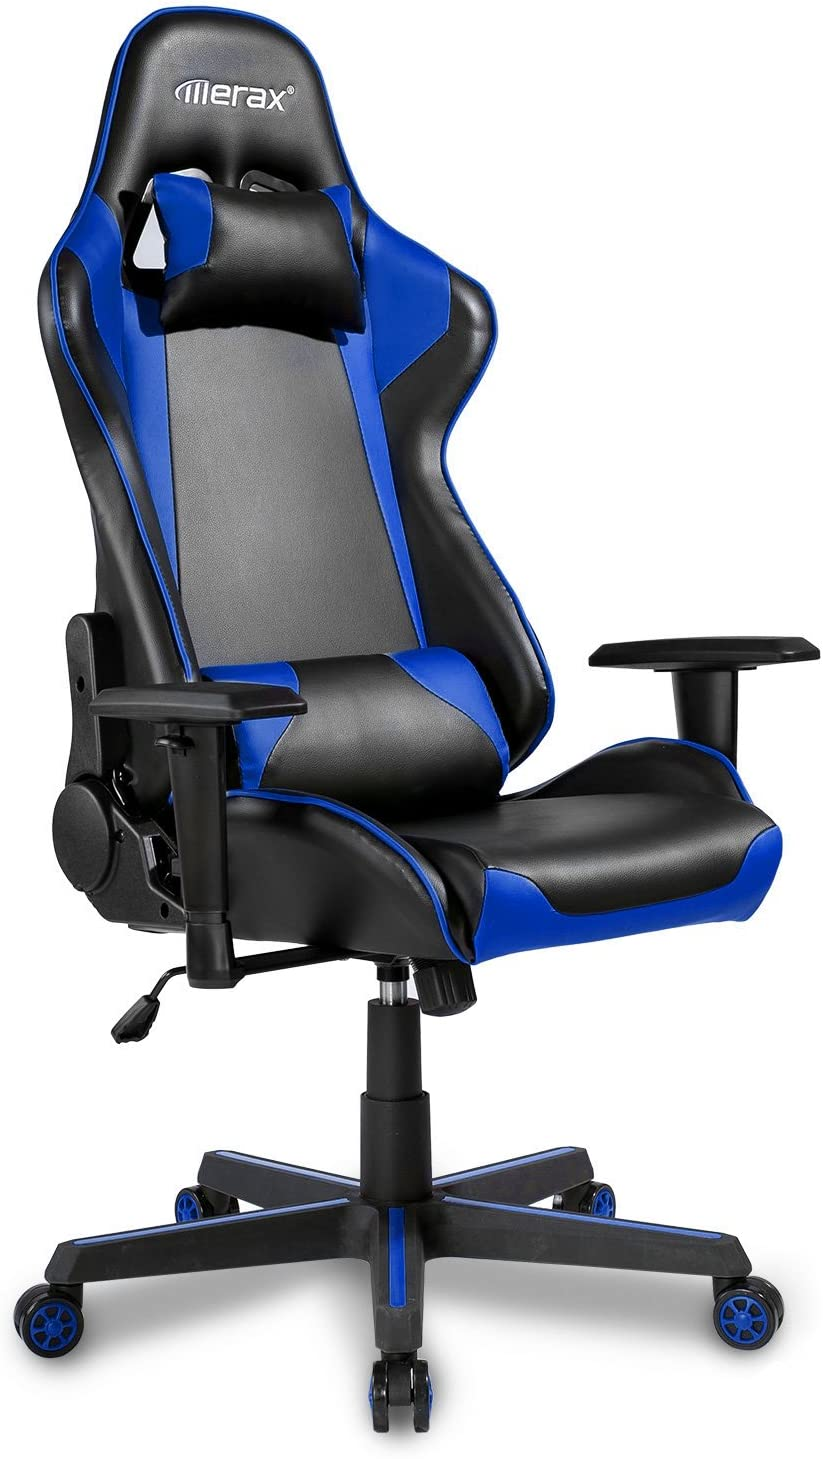 Merax Office Chair Executive Racing Gaming Chair Swivel PU Leather Chair with Wide Armrests (black and blue)